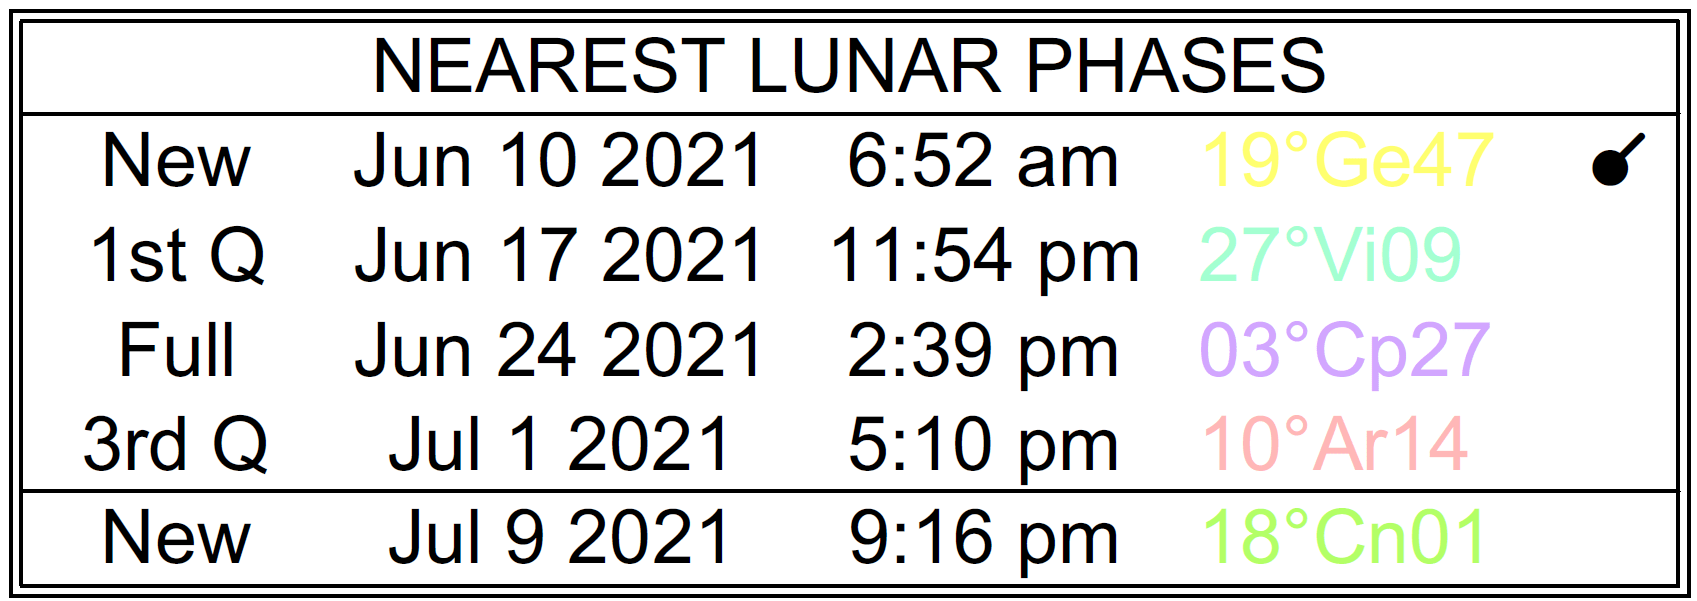 A list of lunar phases dates starting at the New Moon on June 10th, 2021